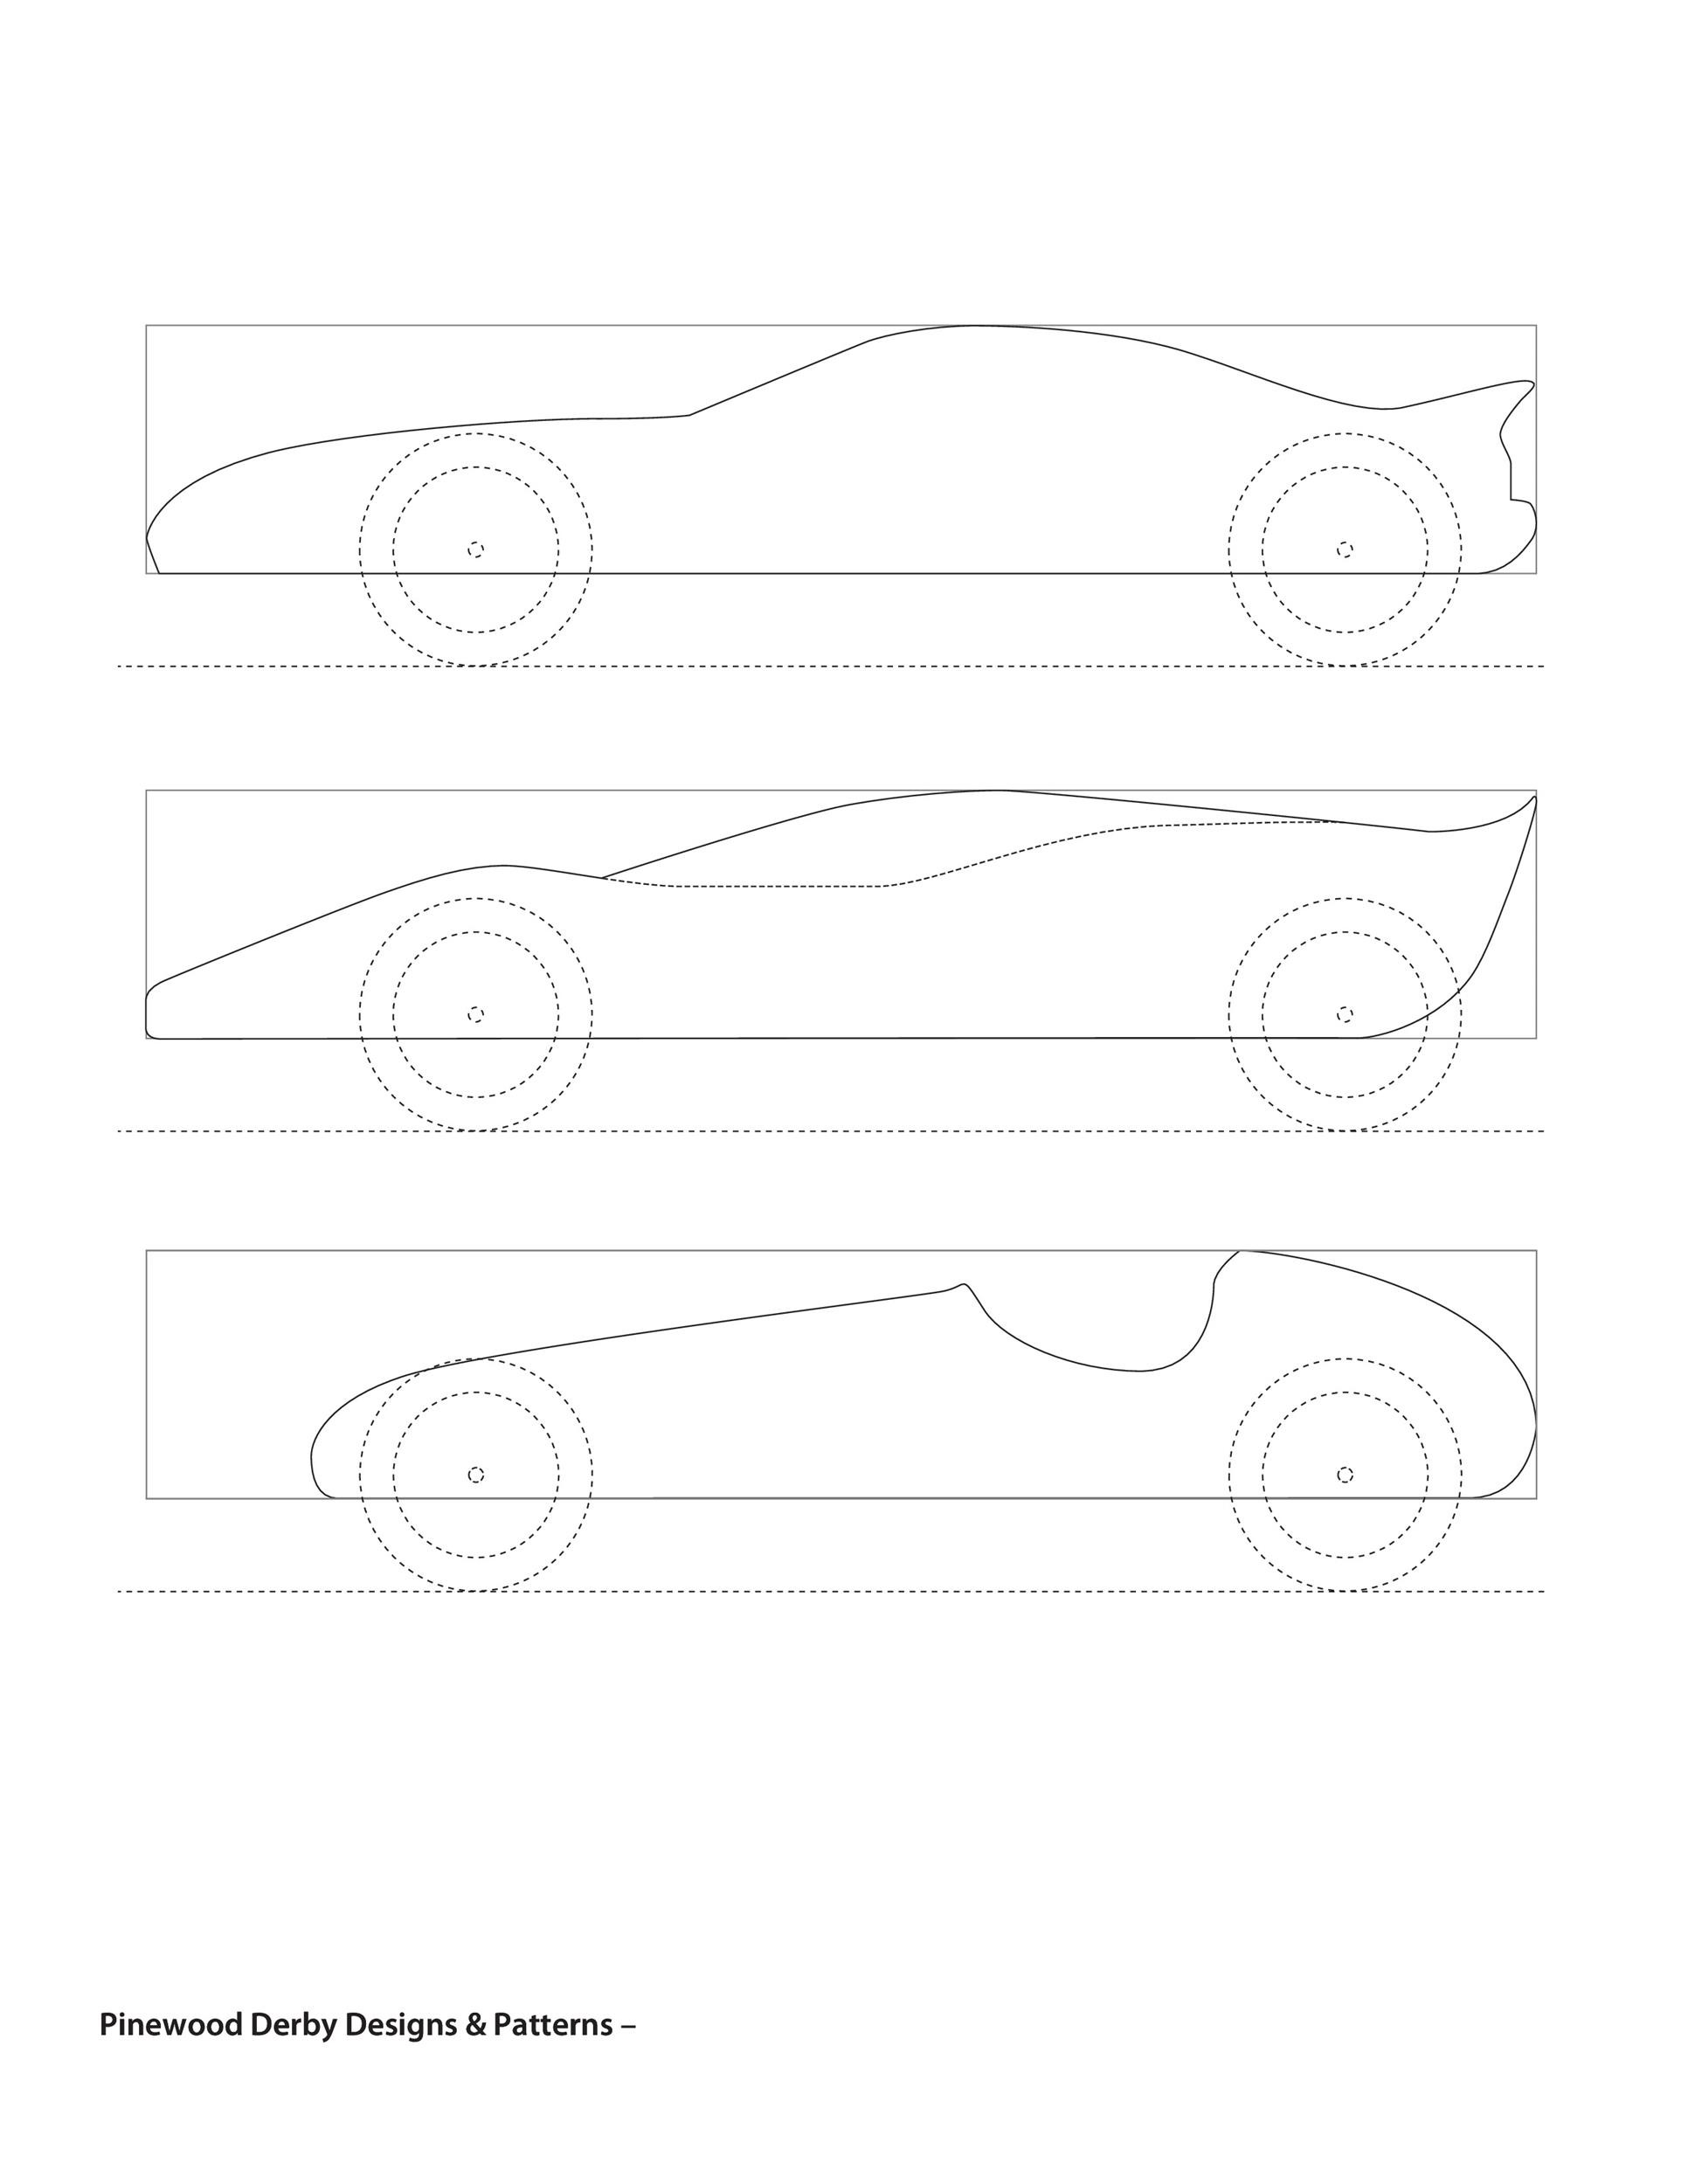 pinewood derby shark template - pinewood car templates free pinewood derby cars design